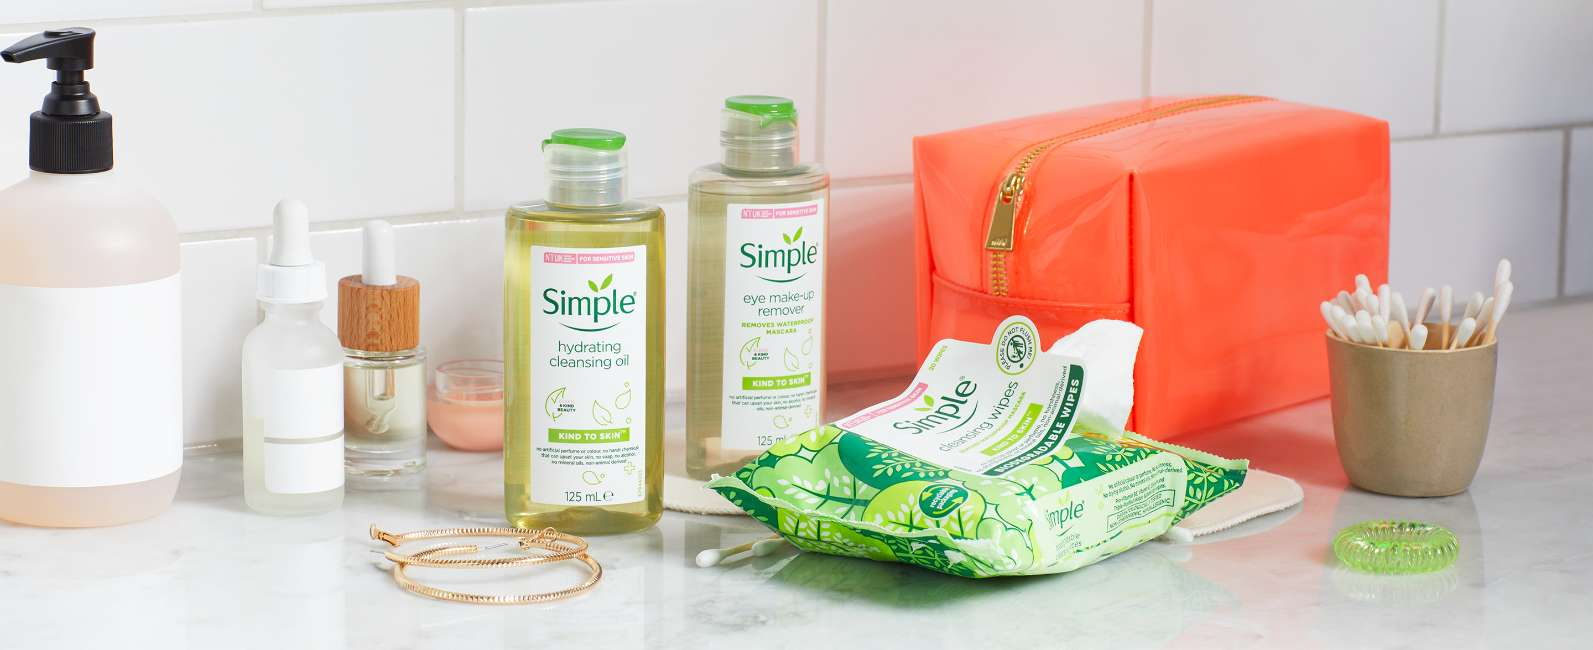 Simple products with cotton buds and toiletry bag and on a white bathroom shelf